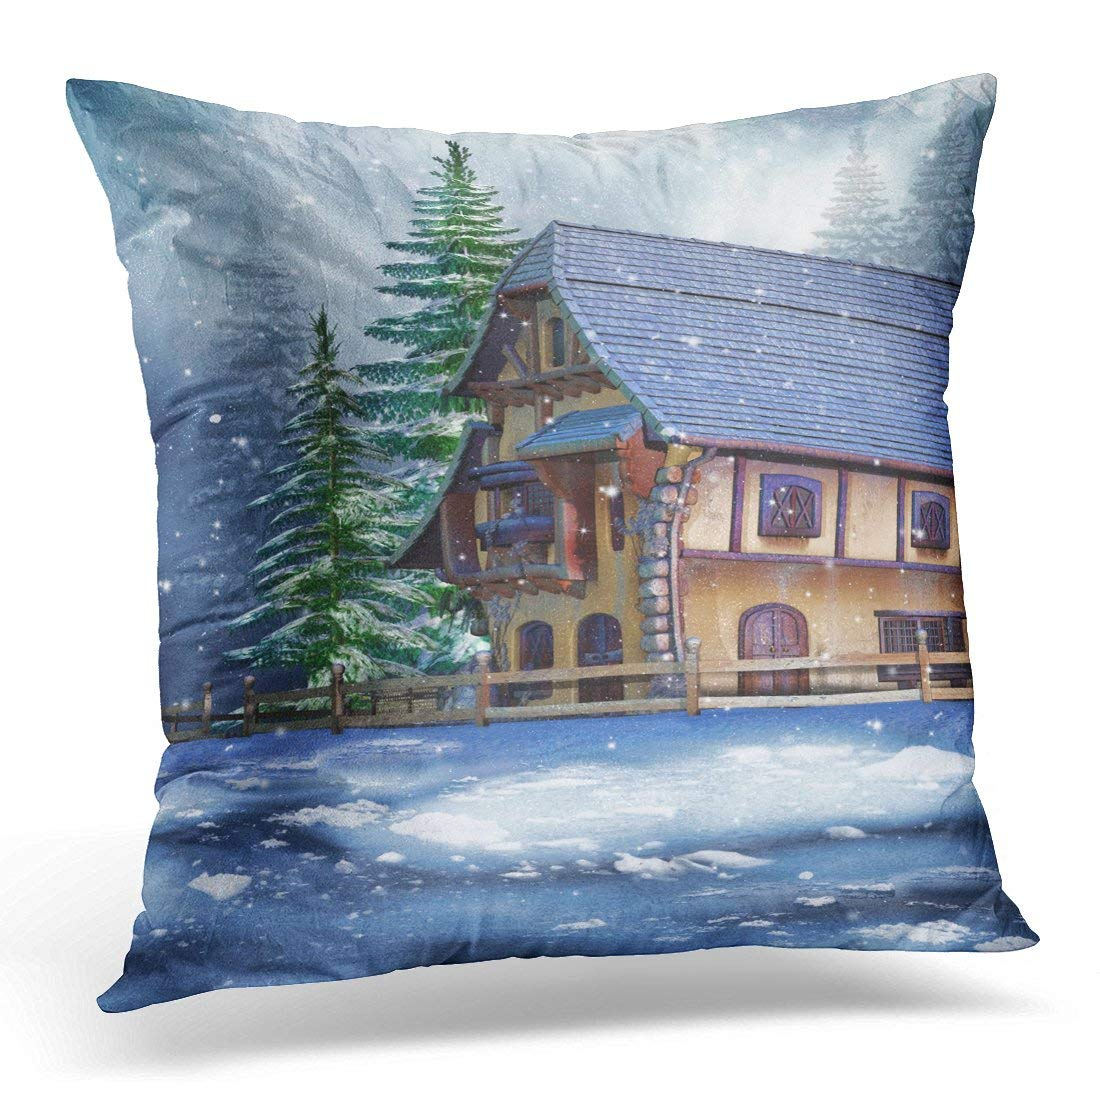 CMFUN Blue House Colorful Cottage in Snowy Winter Forest Ice Throw Pillow Case Pillow Cover Sofa Home Decor 16x16 Inches